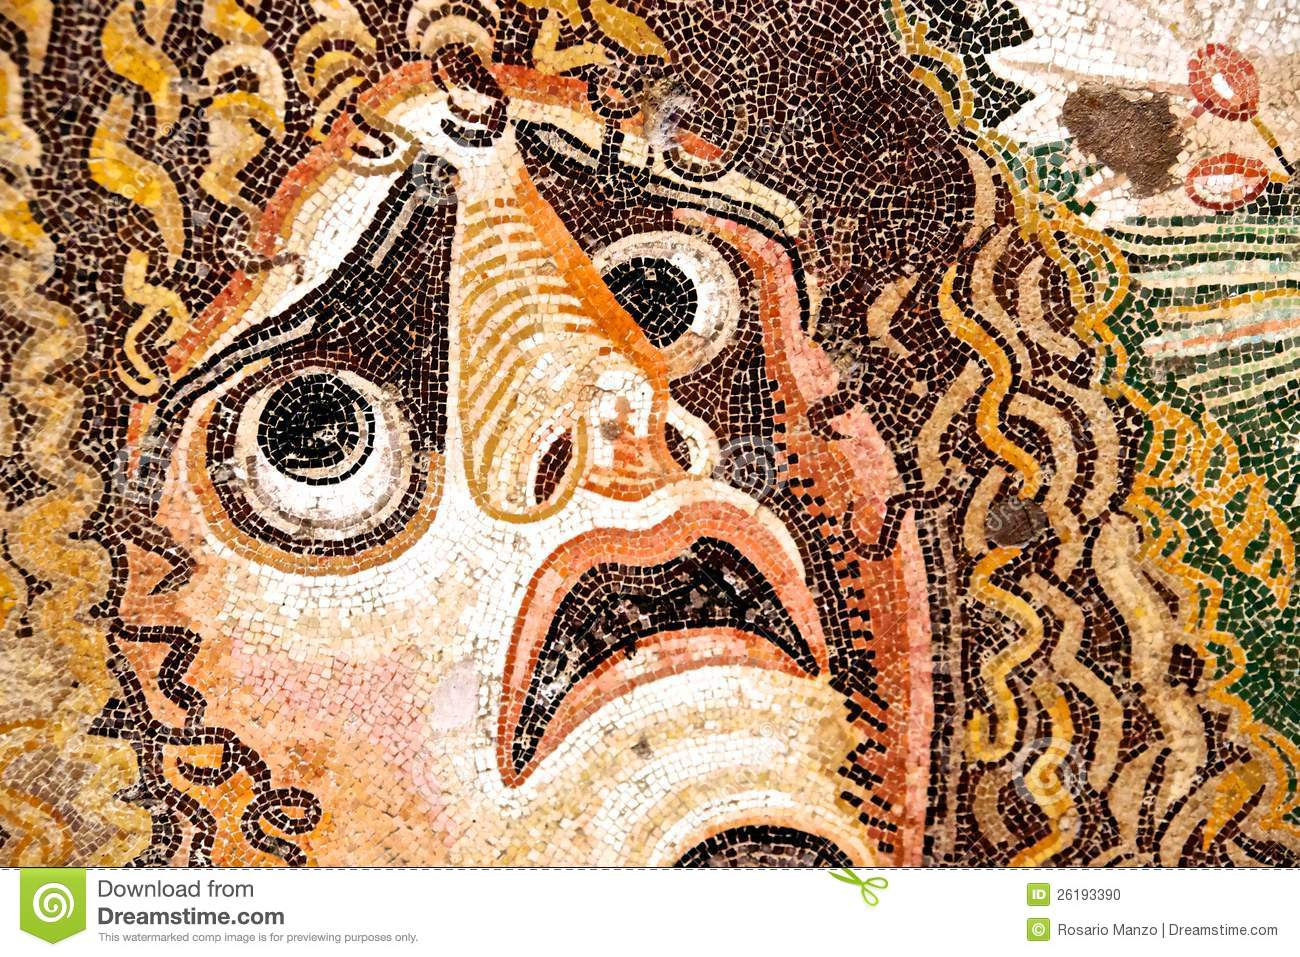 Picture: http://thumbs.dreamstime.com/z/ancient-roman-mosaic -fearful-face-26193390.jpg